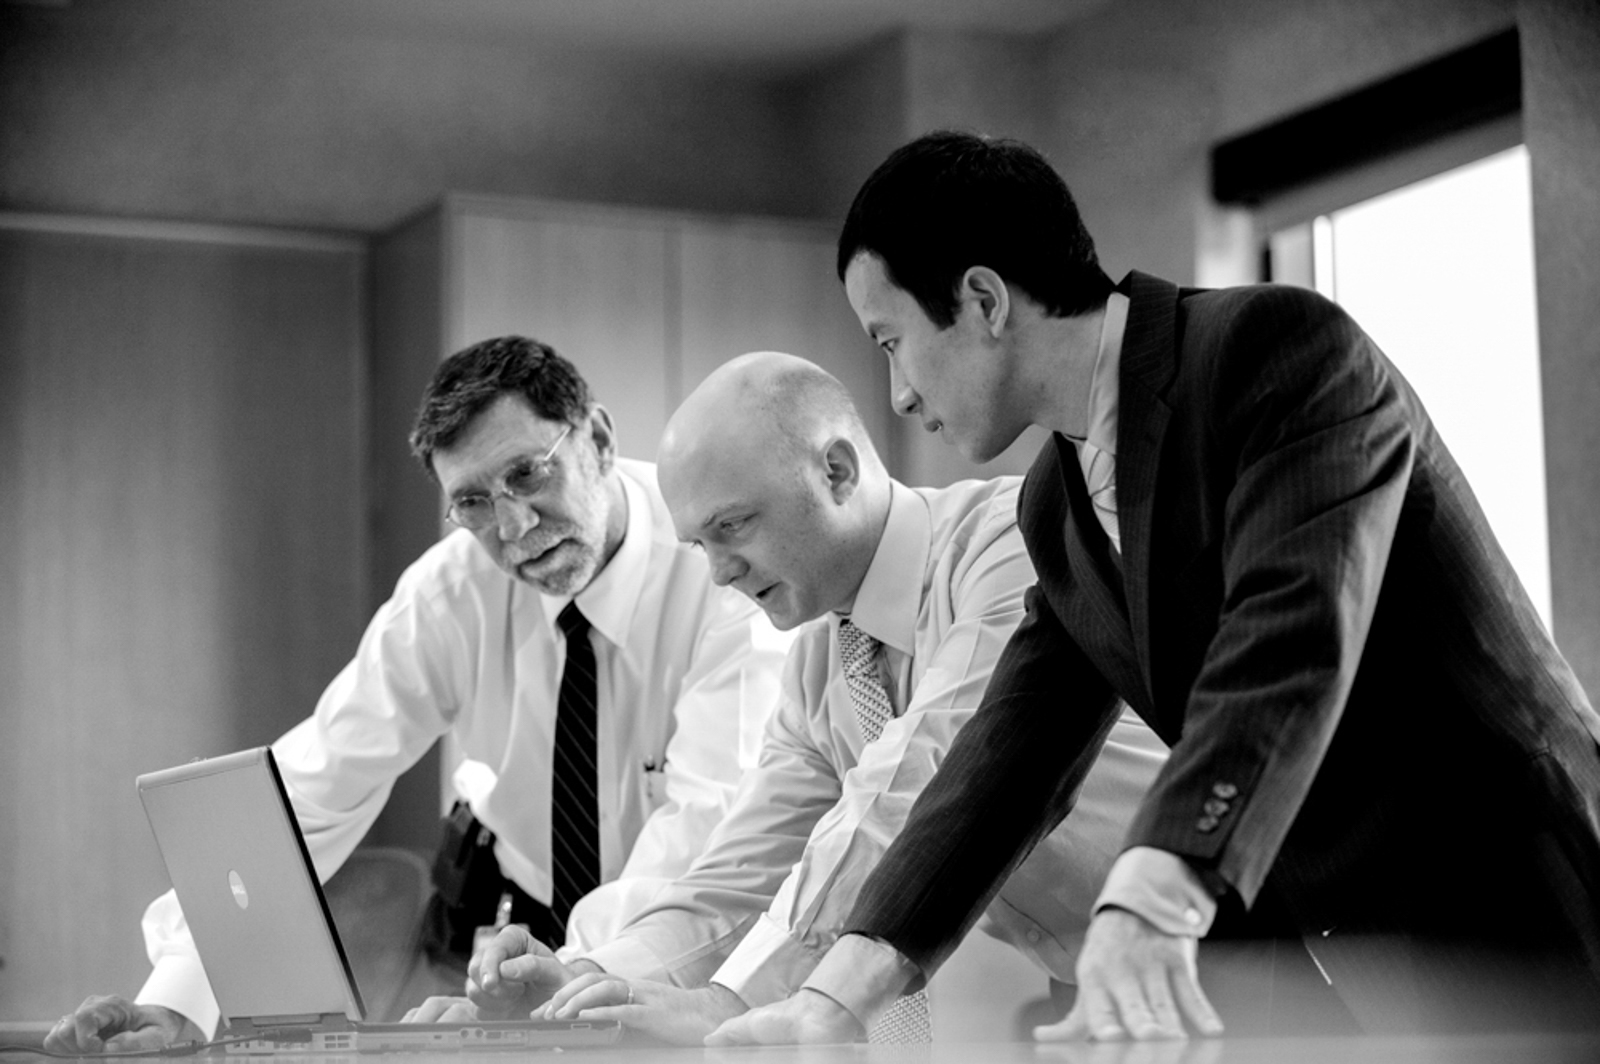 Candid of three men looking at laptop, in office